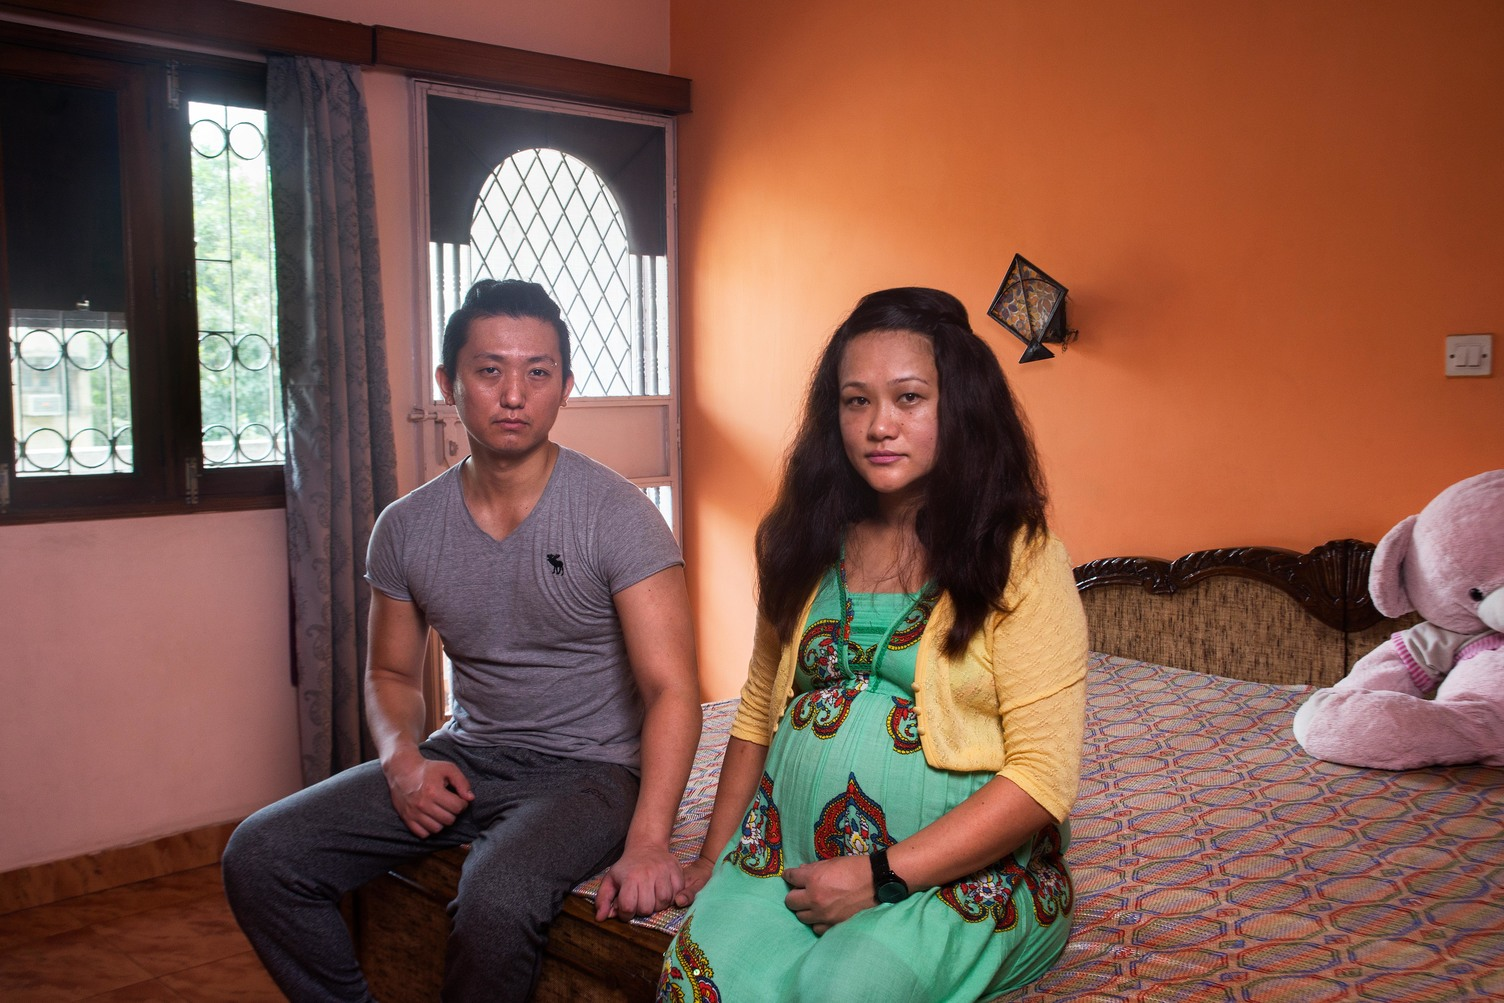 Priscella Nimmi Sereng and Jignee Sherpa, photographed at their residence in Sarita Vihar. Priscella works as an air hostess with Air India, while Jigmee works at Samsung